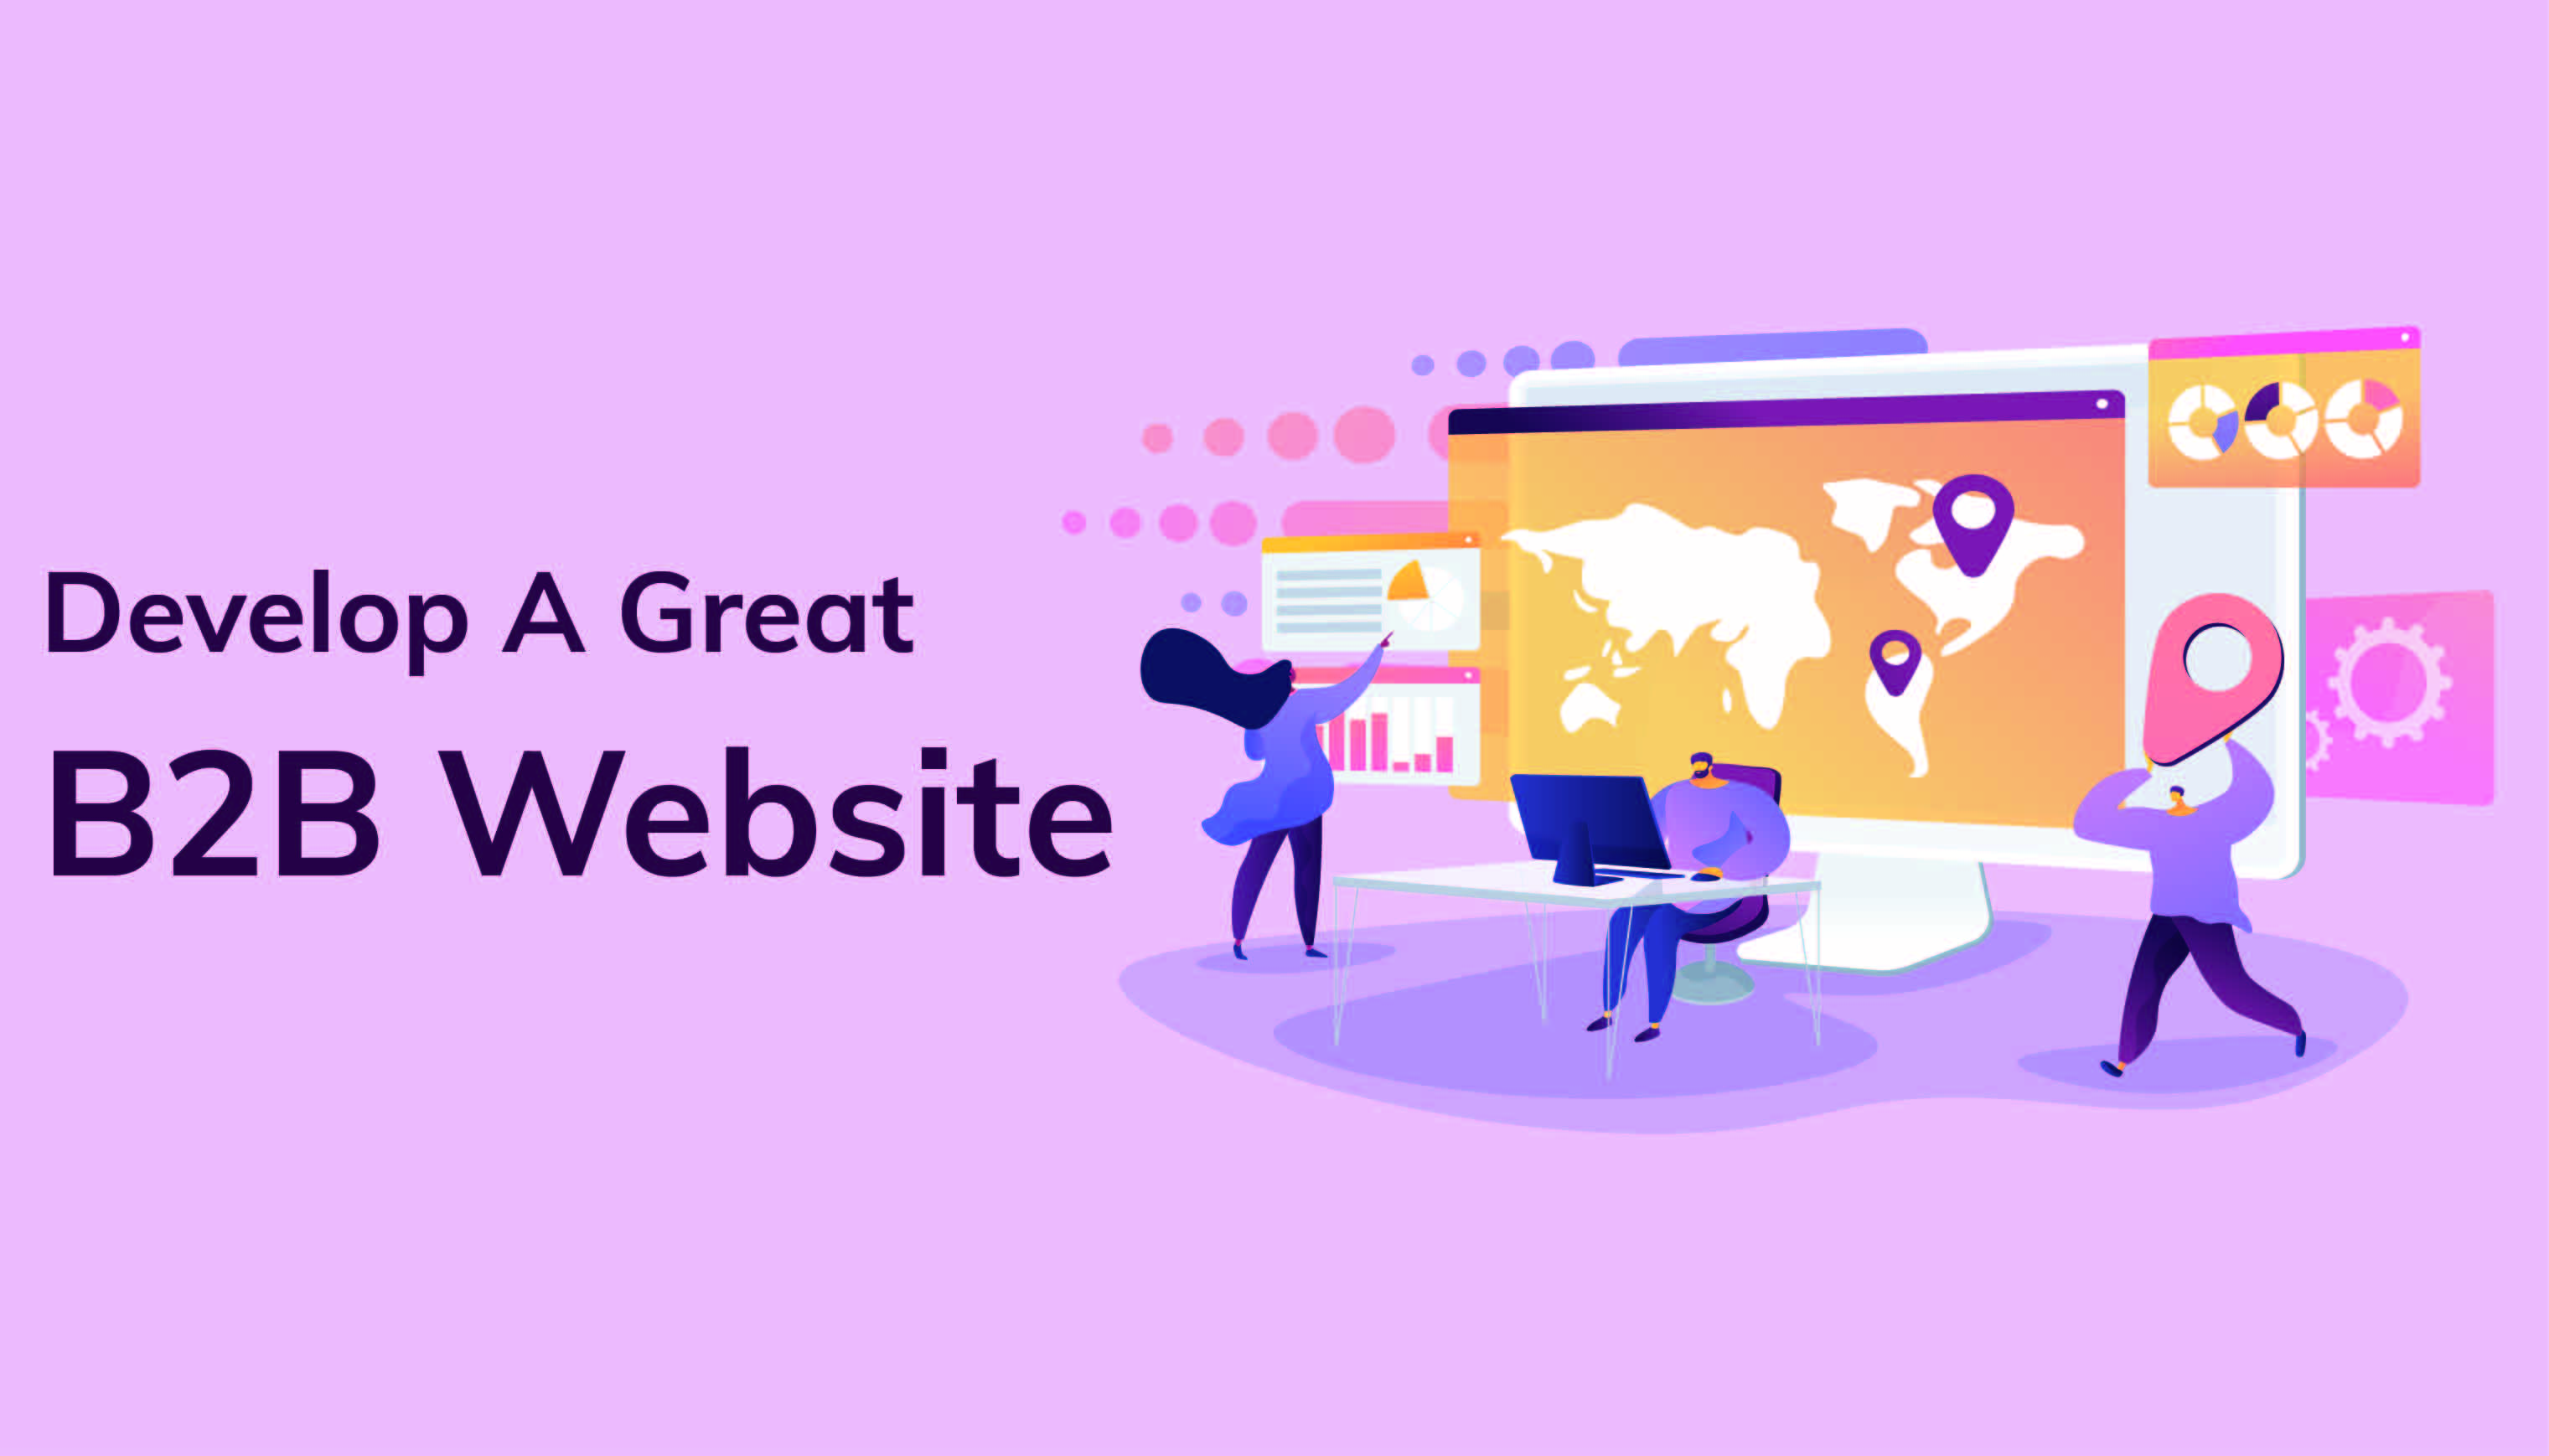 How To Develop A Great B2B Website